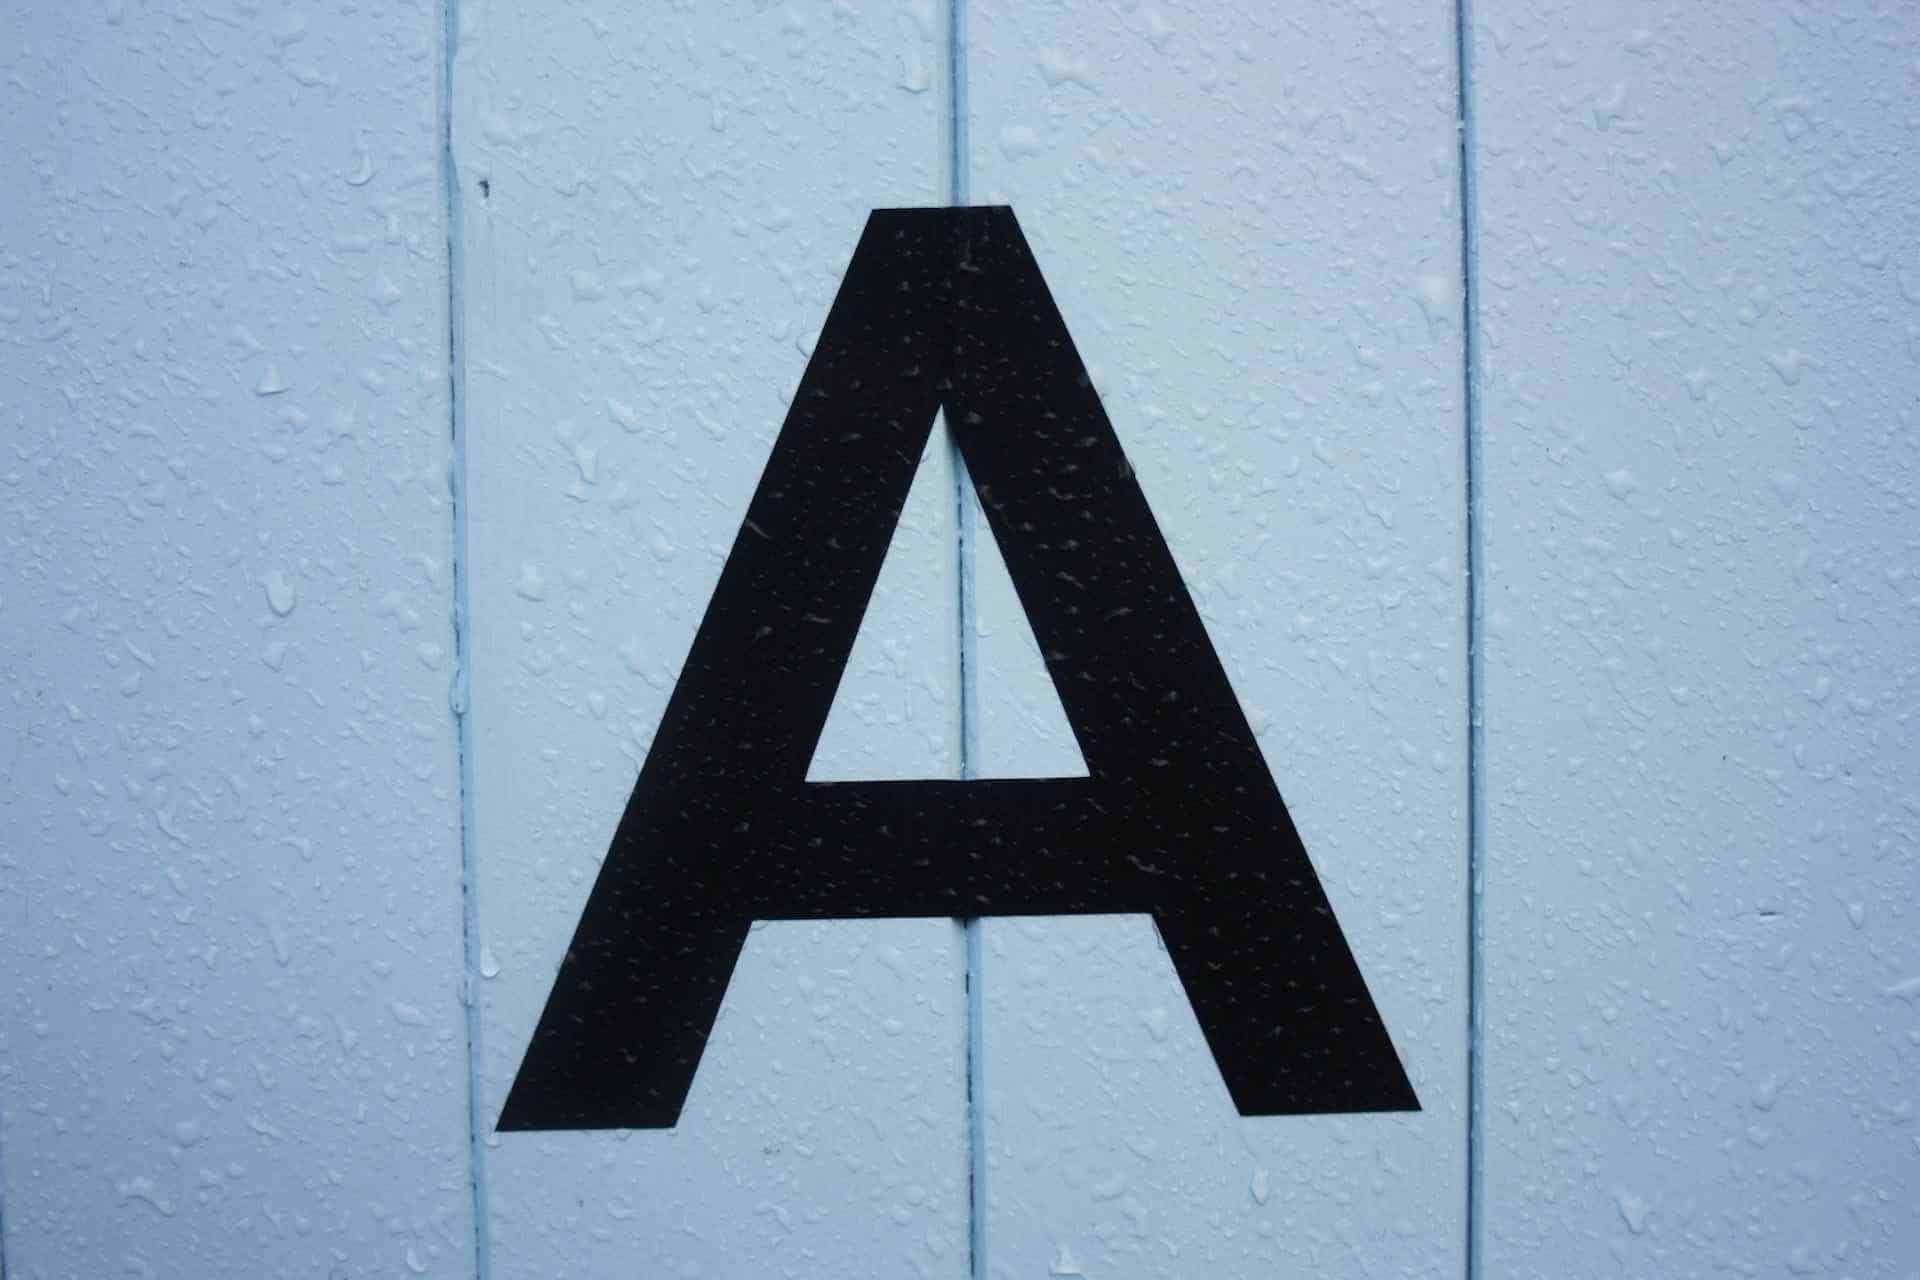 A wall with a letter A painted on it